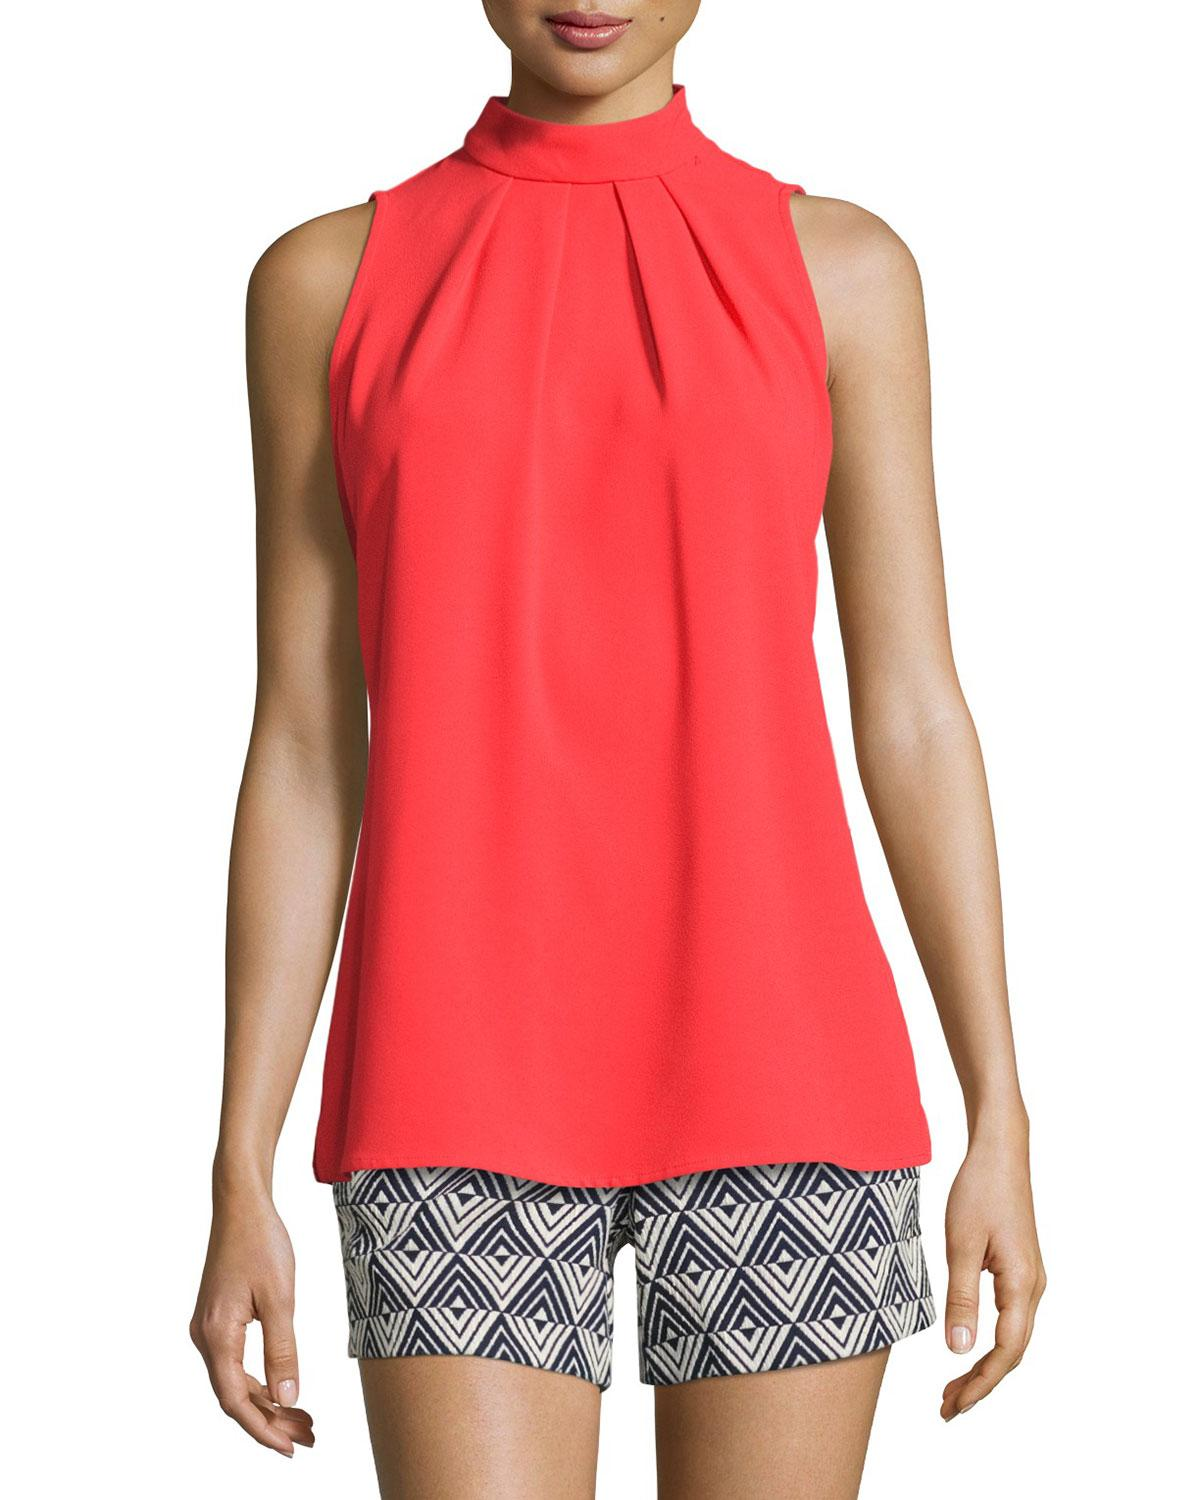 Trina turk Kenji Sleeveless Crepe Mock-neck Top in Red | Lyst | 1200 x 1500 jpeg 143kB